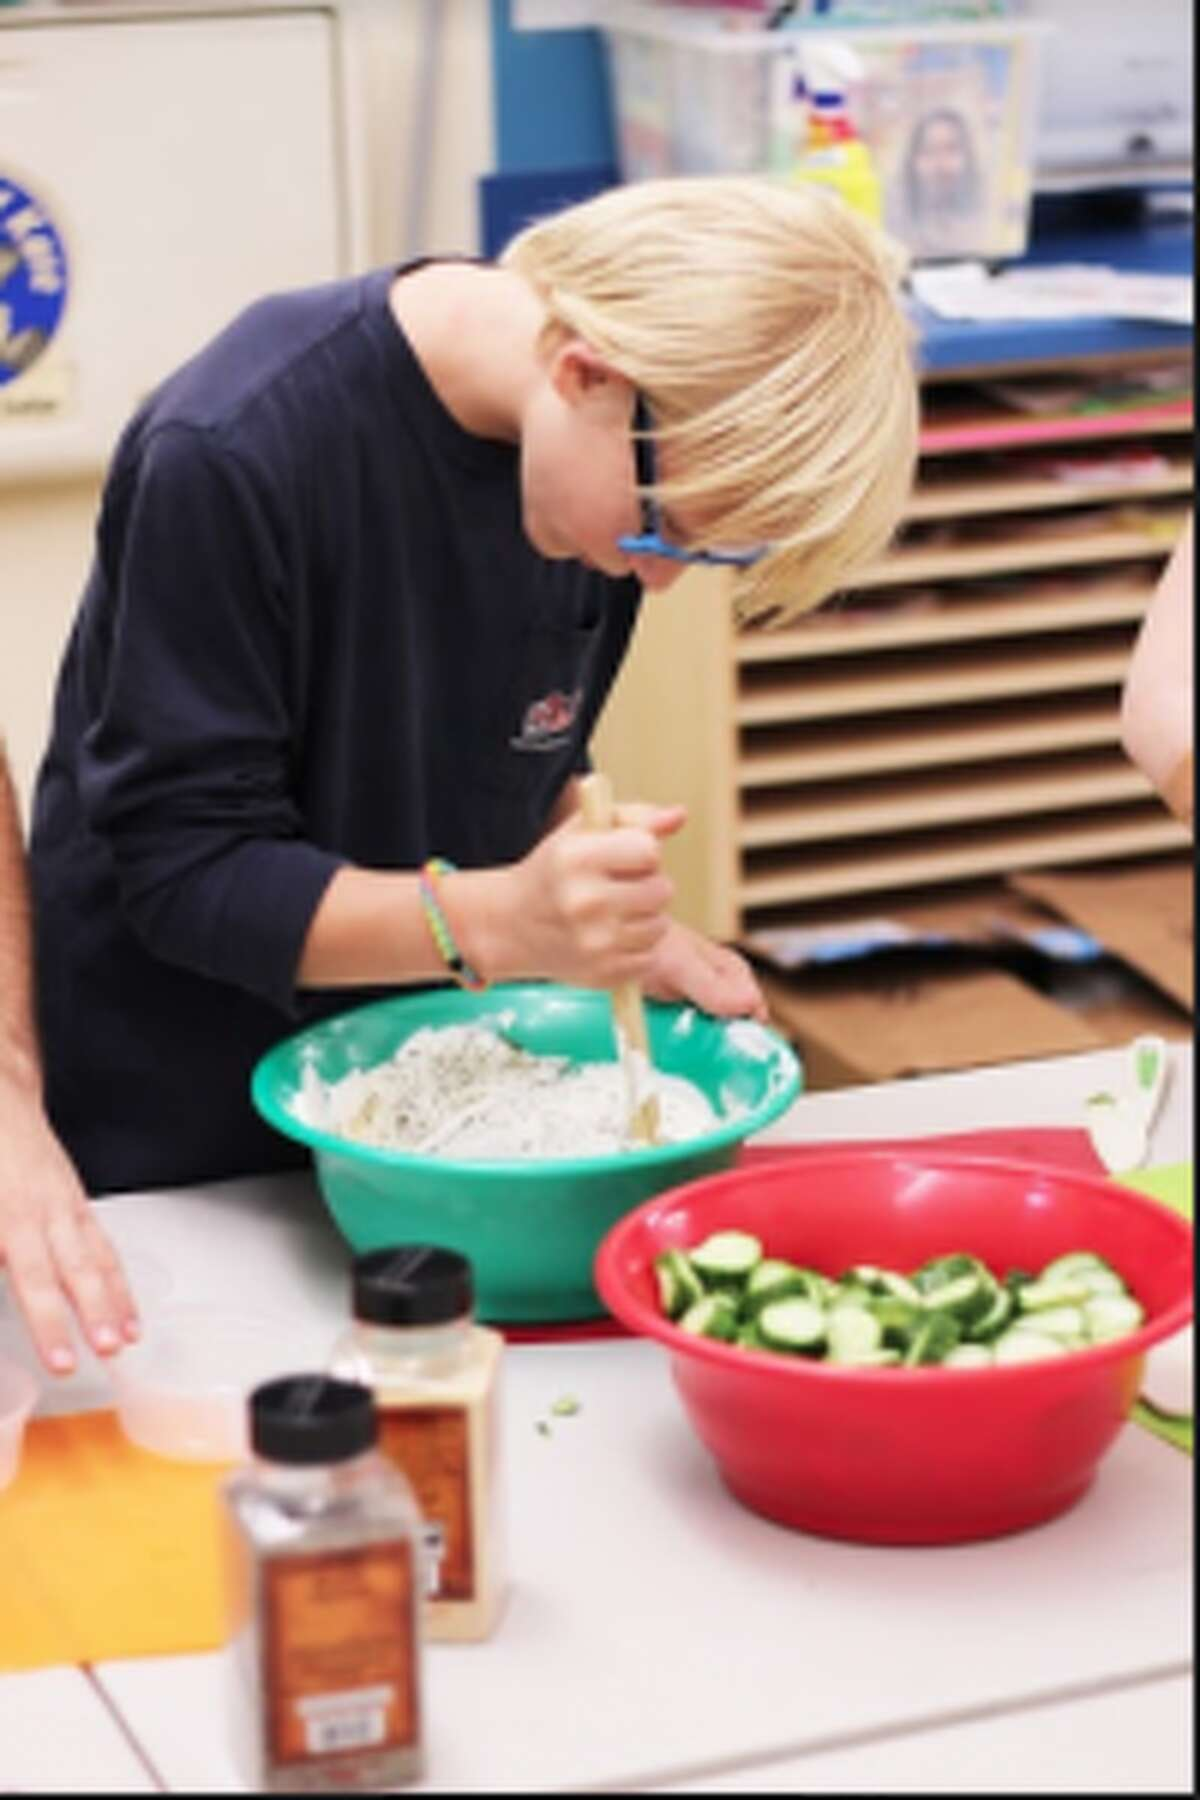 Connor O'Neill, 12, helps with snack preparation with the Darien YMCA's Innovative Vocations program.